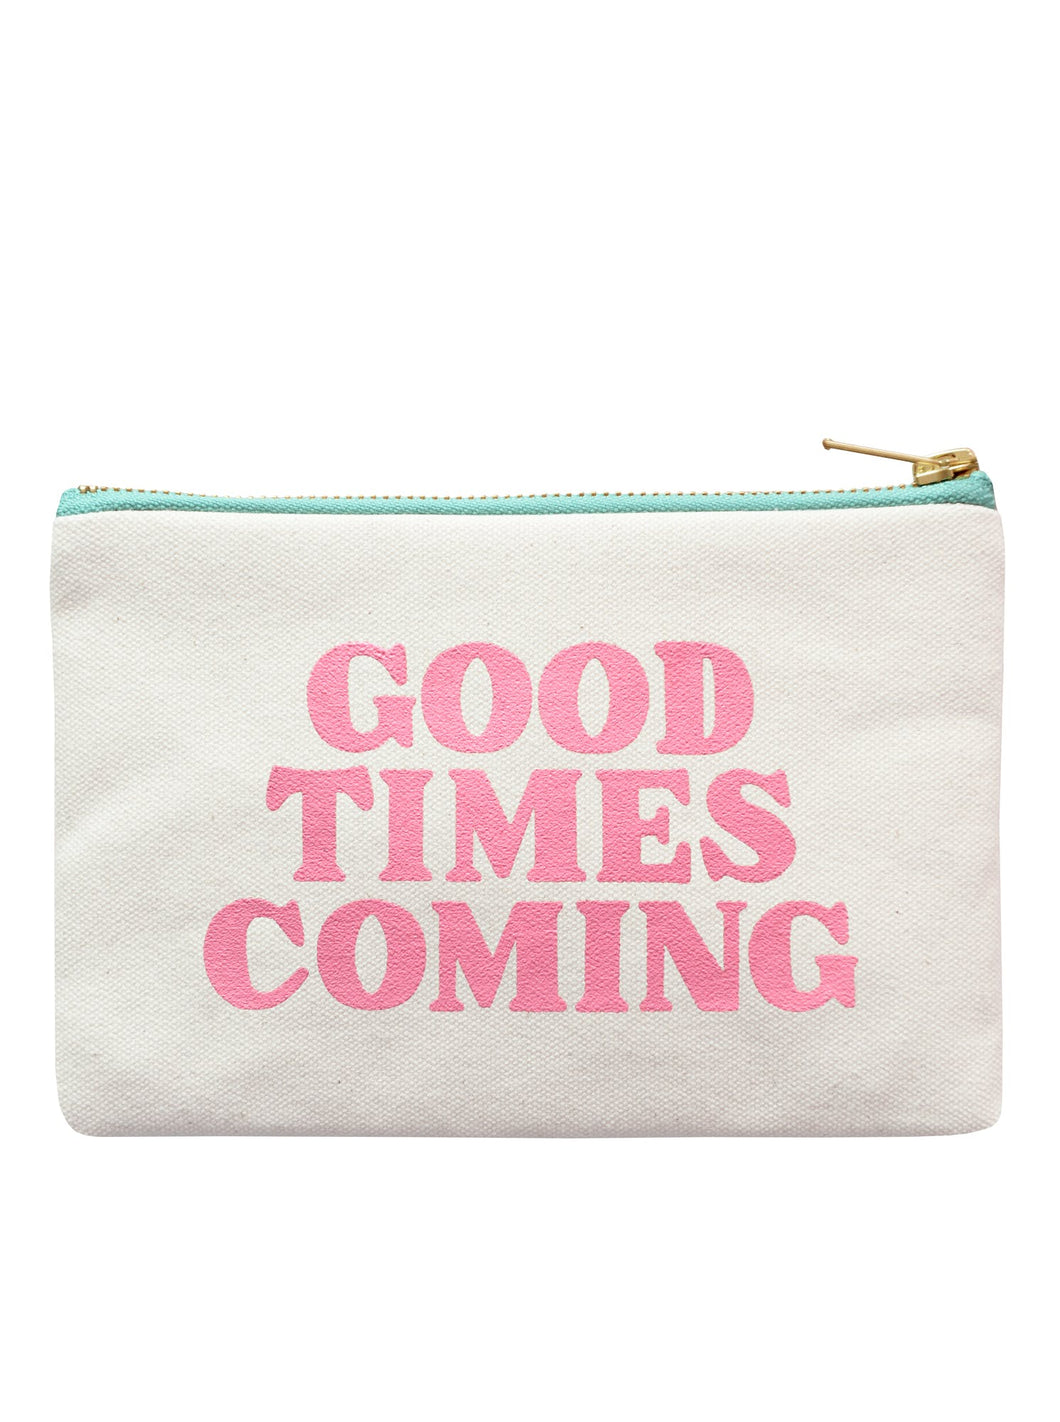 Good Times Coming - Little Pouch